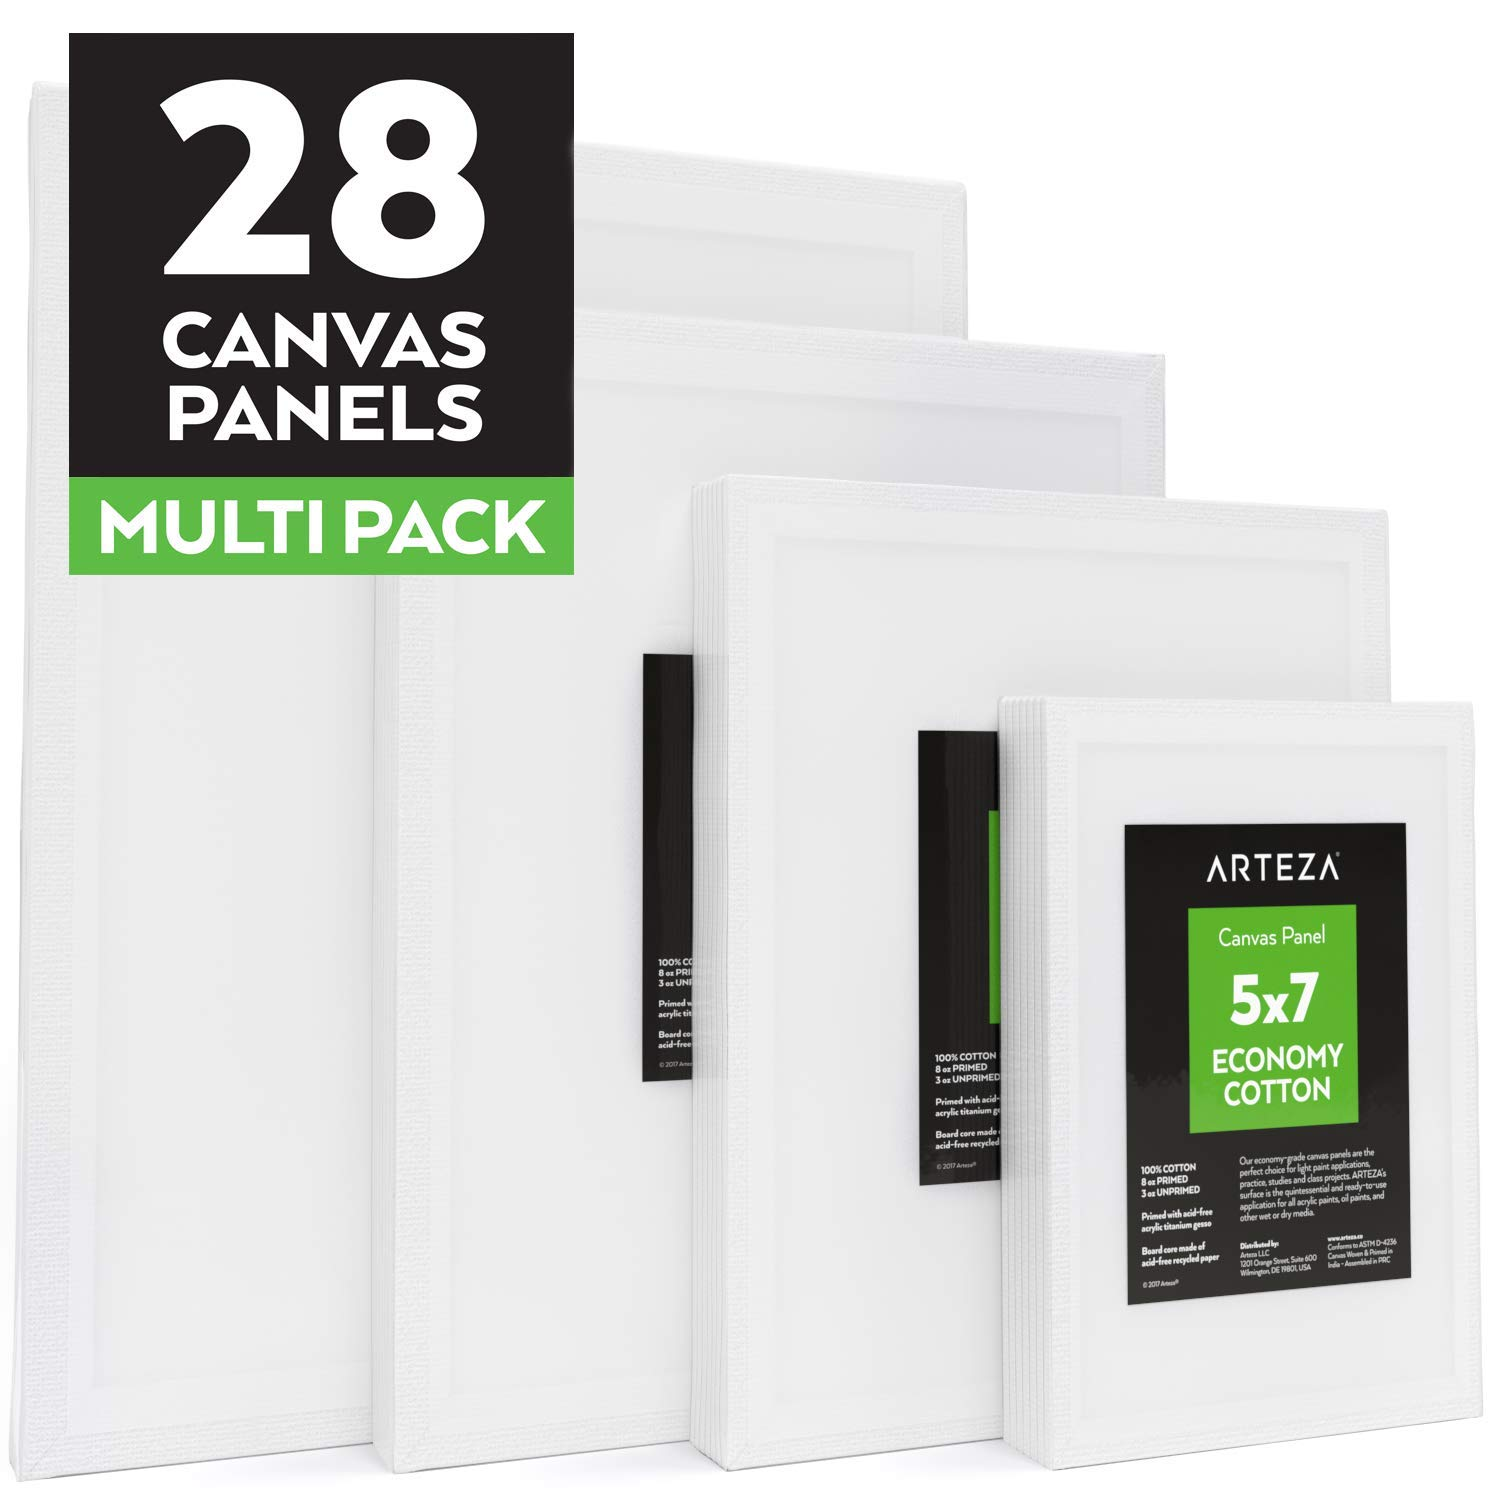 Arteza Painting Canvas Panels Multi Pack, 5x7'', 8x10'', 9x12'', 11x14'', Set of 28, Primed White, 100% Cotton with Recycled Board Core, for Acrylic, Oil, Other Wet or Dry Art Media, for Artists by ARTEZA